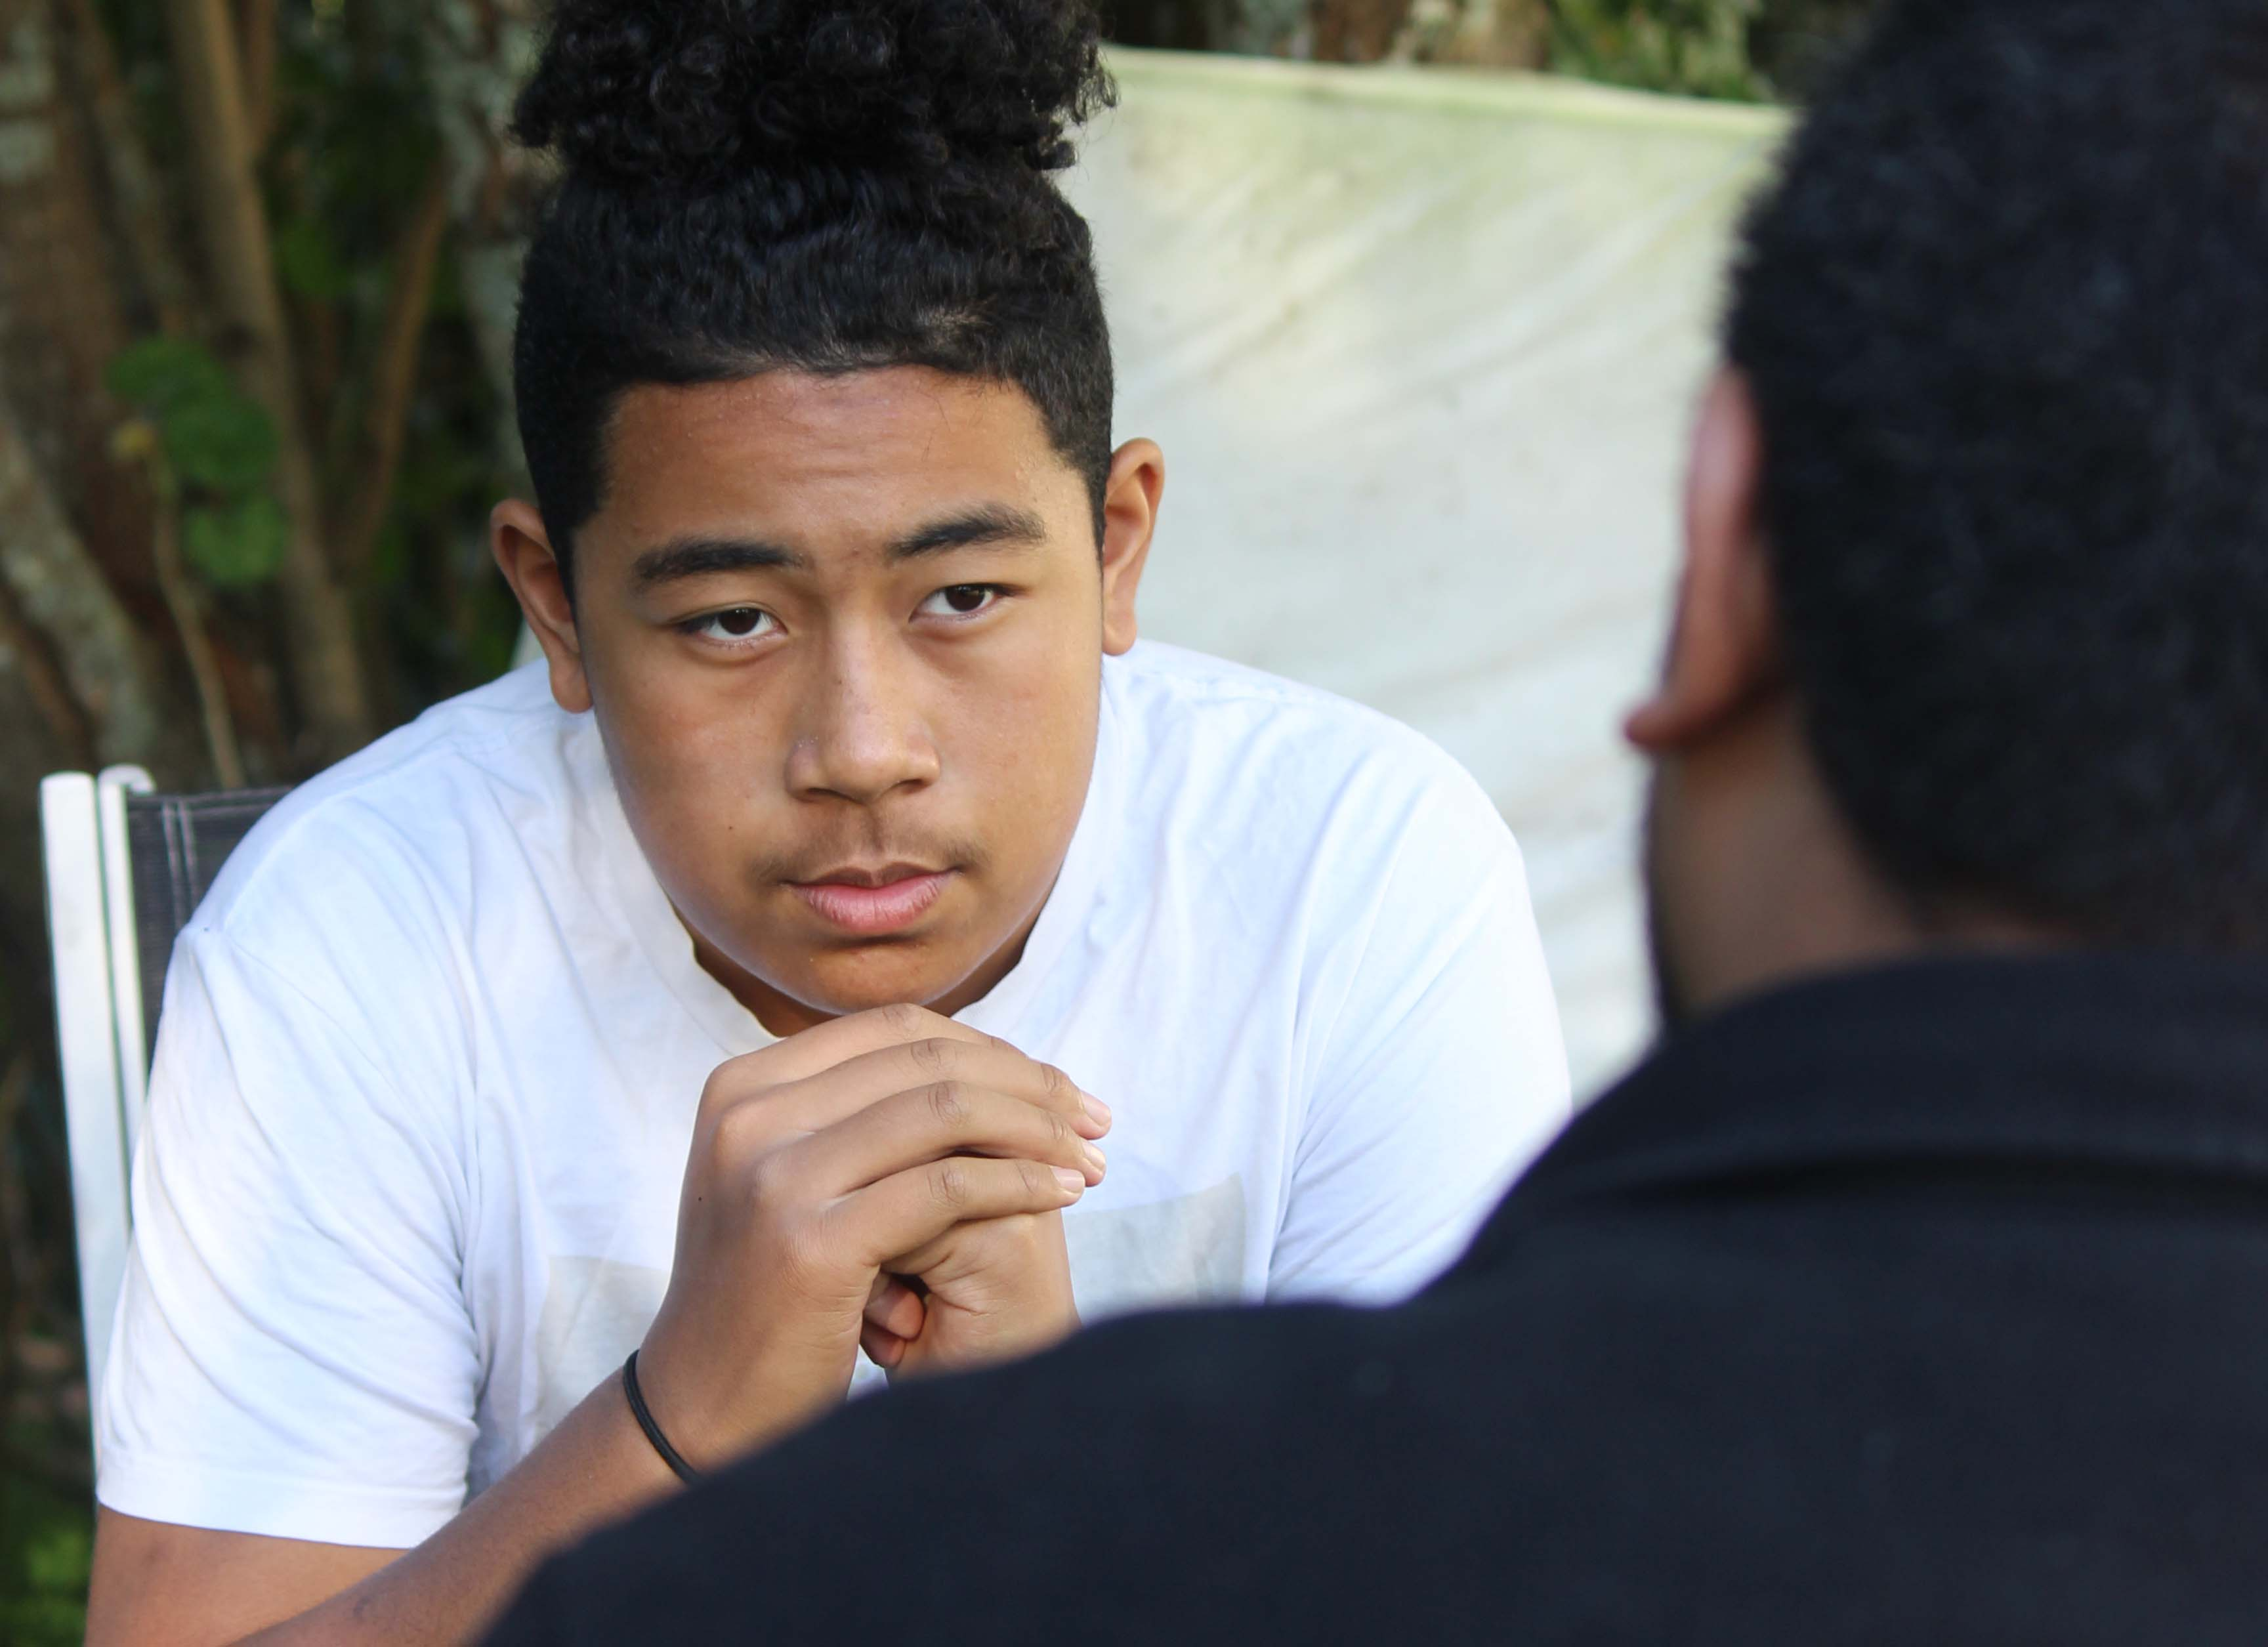 Pasifika Family Violence & Anger Management Counselling Services